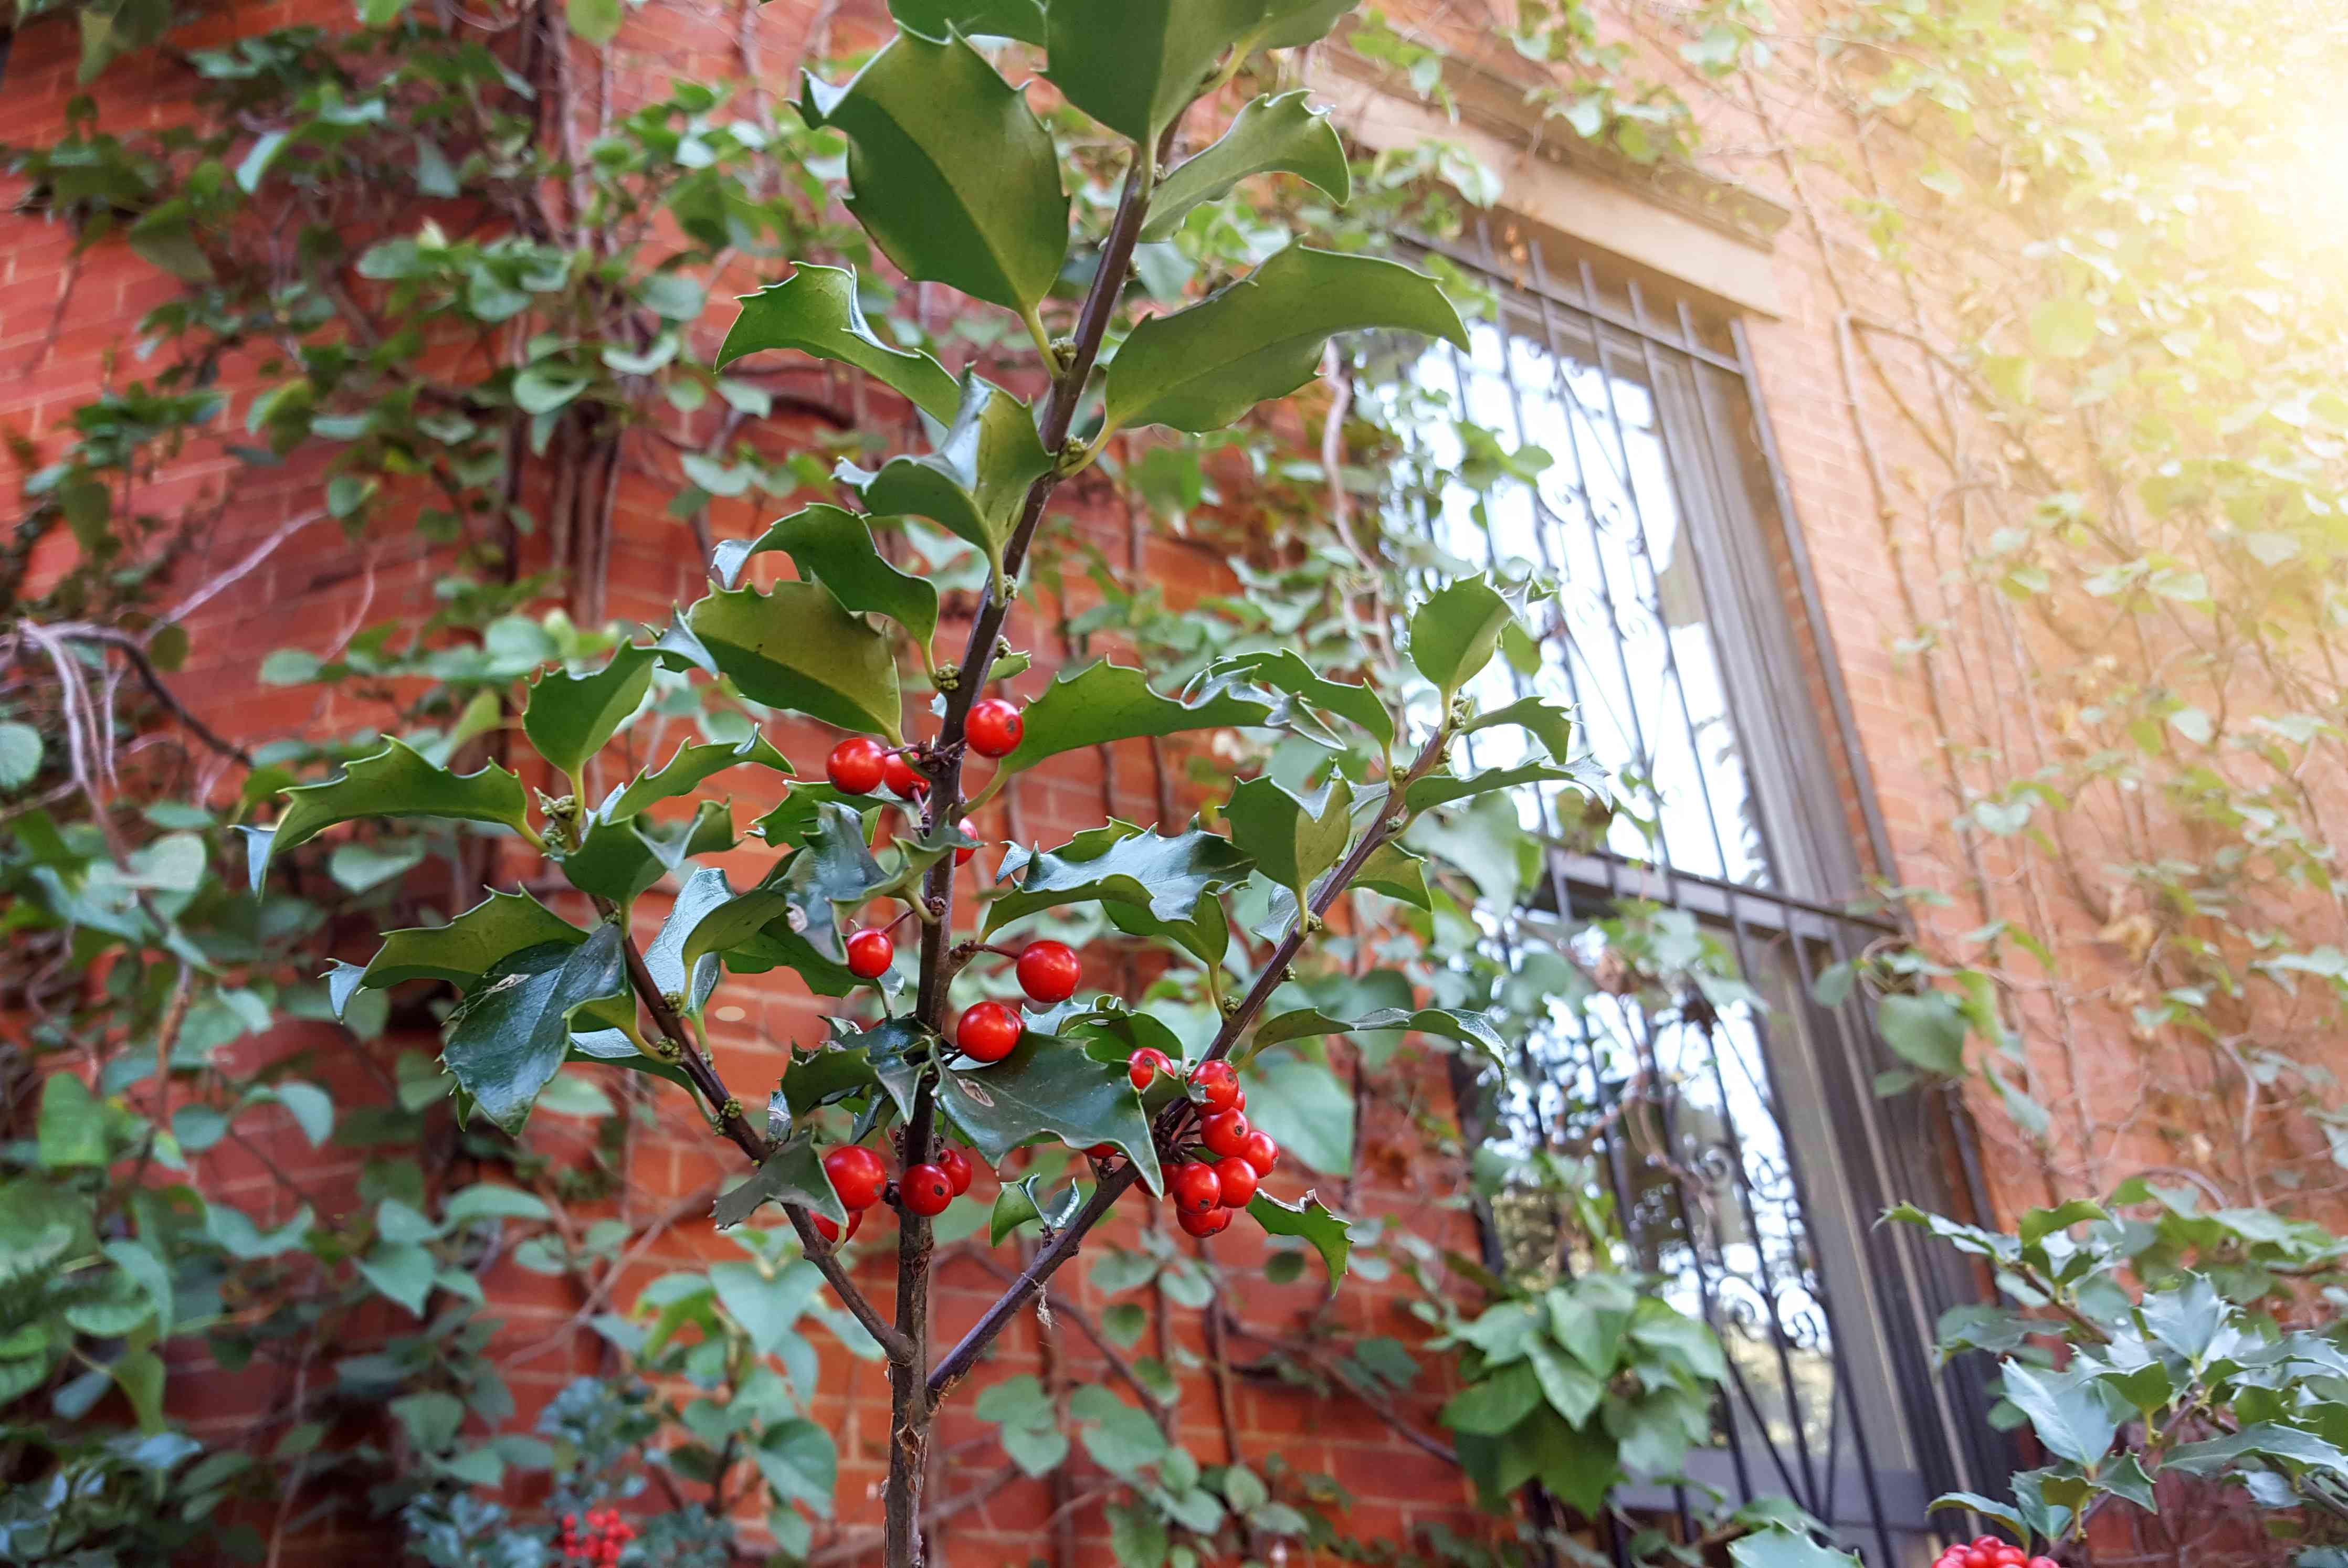 Detail of Common Holly bush with berries on fence of townhouse in Manhattan, New York City